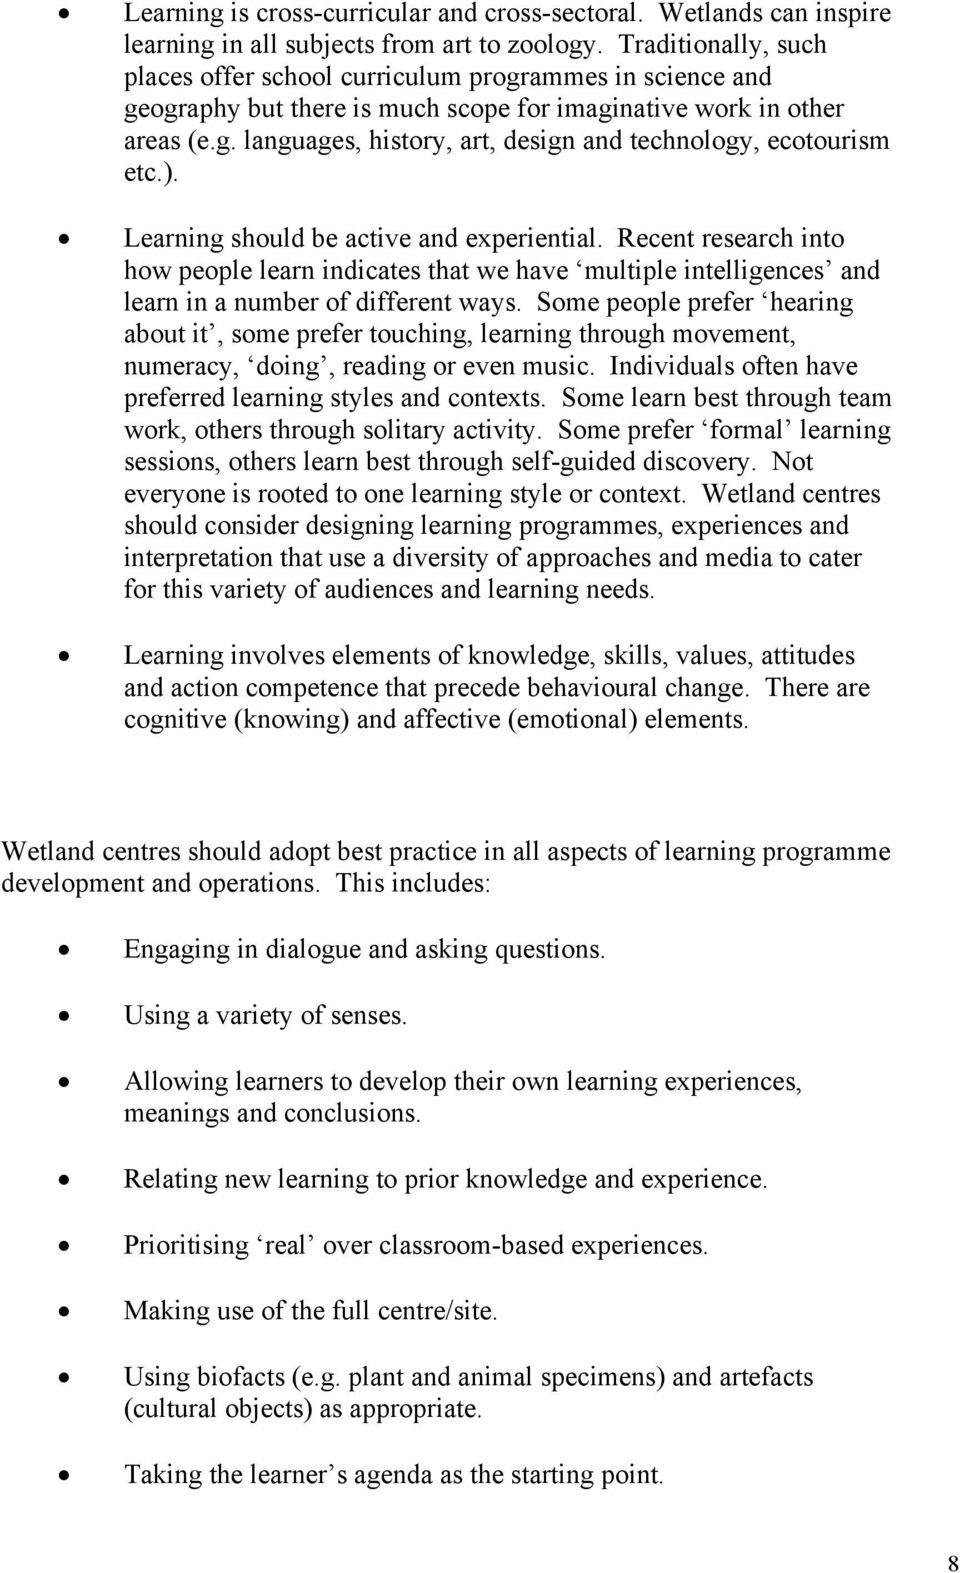 ). Learning should be active and experiential. Recent research into how people learn indicates that we have multiple intelligences and learn in a number of different ways.